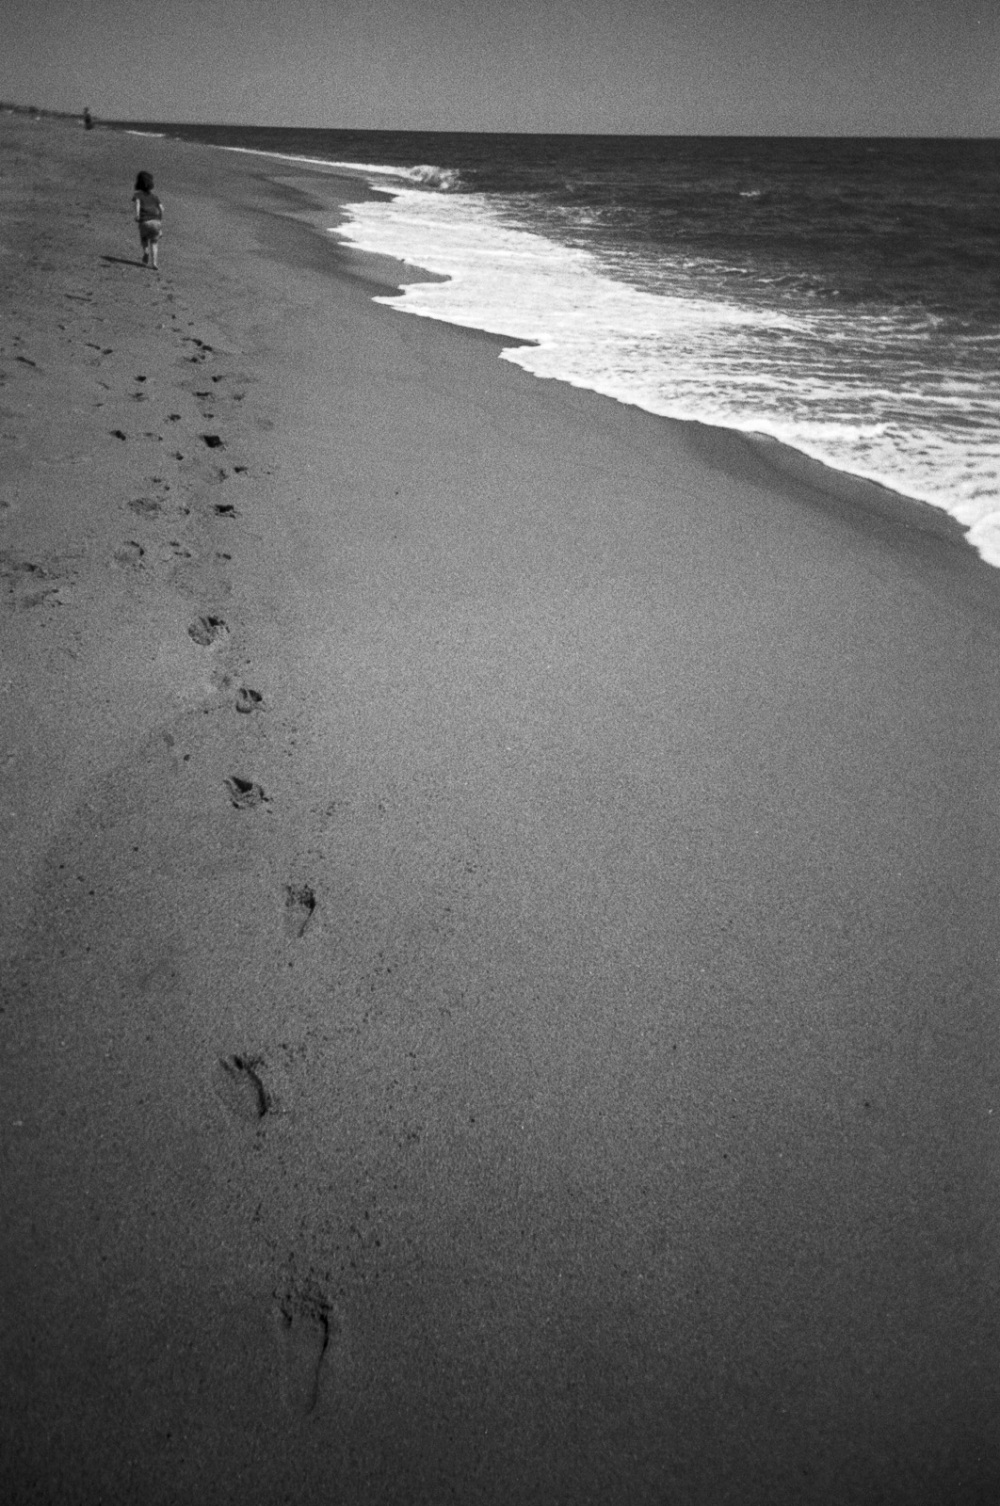 Footsteps on the beach, Outer Banks, NC